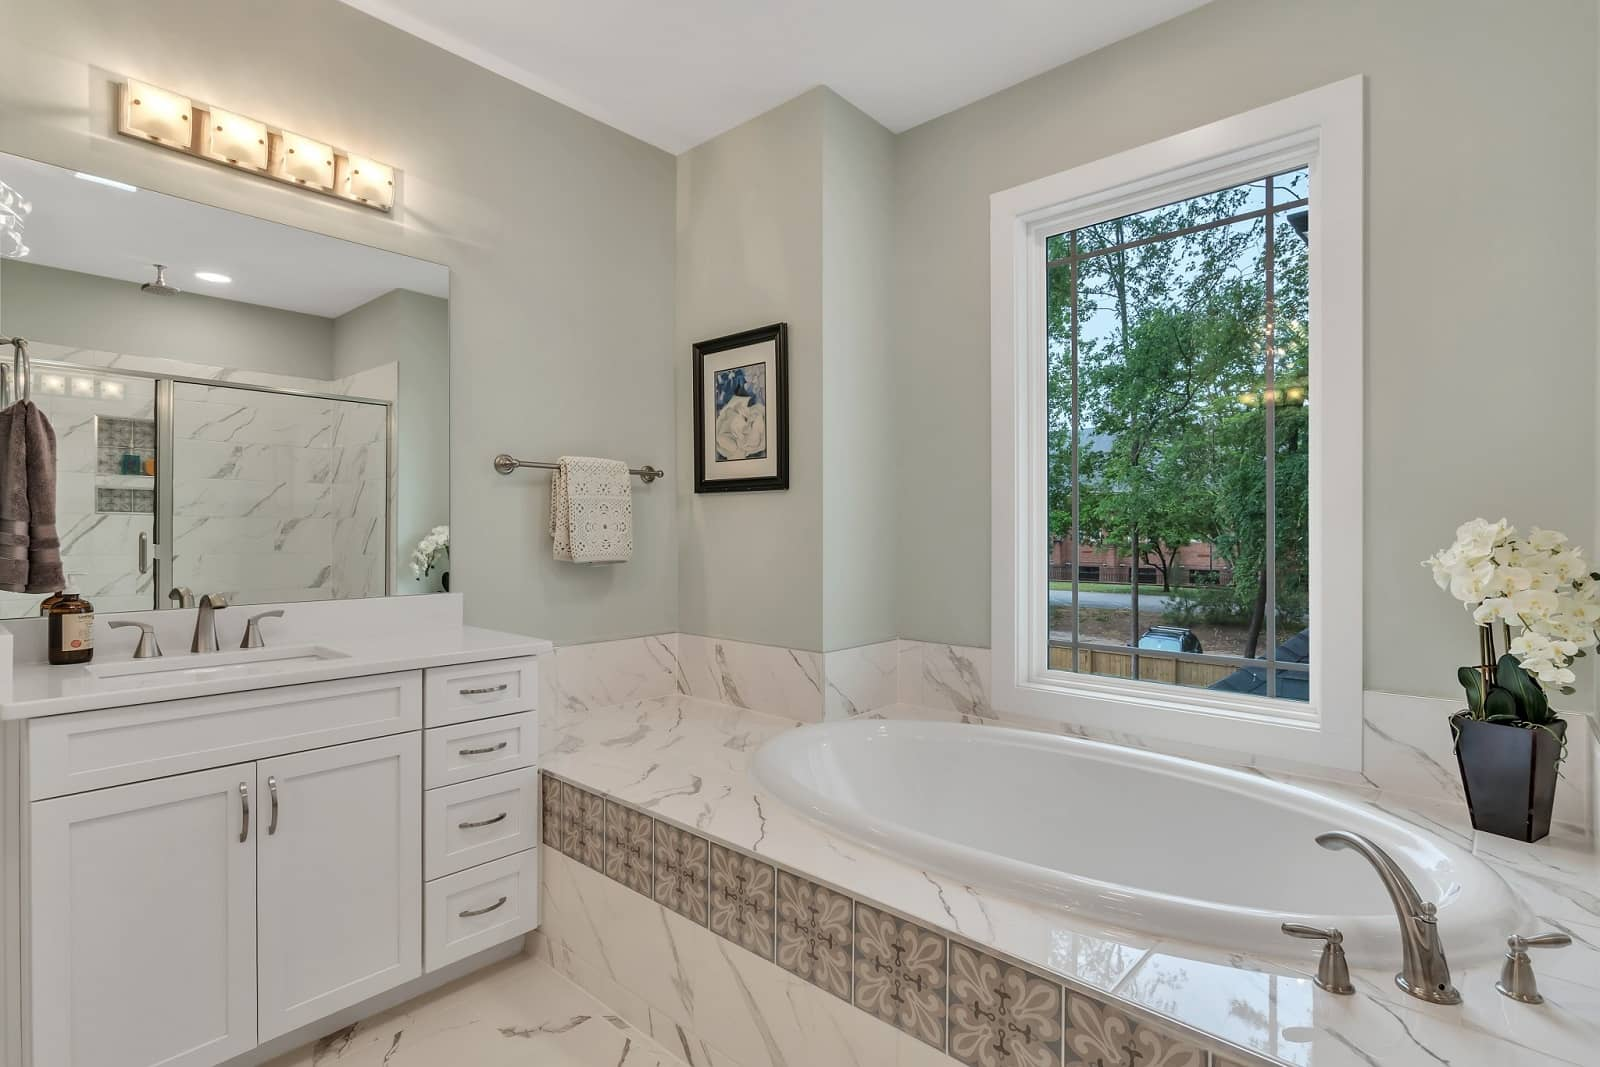 Real Estate Photography in Raleigh - NC - USA - Bathroom View